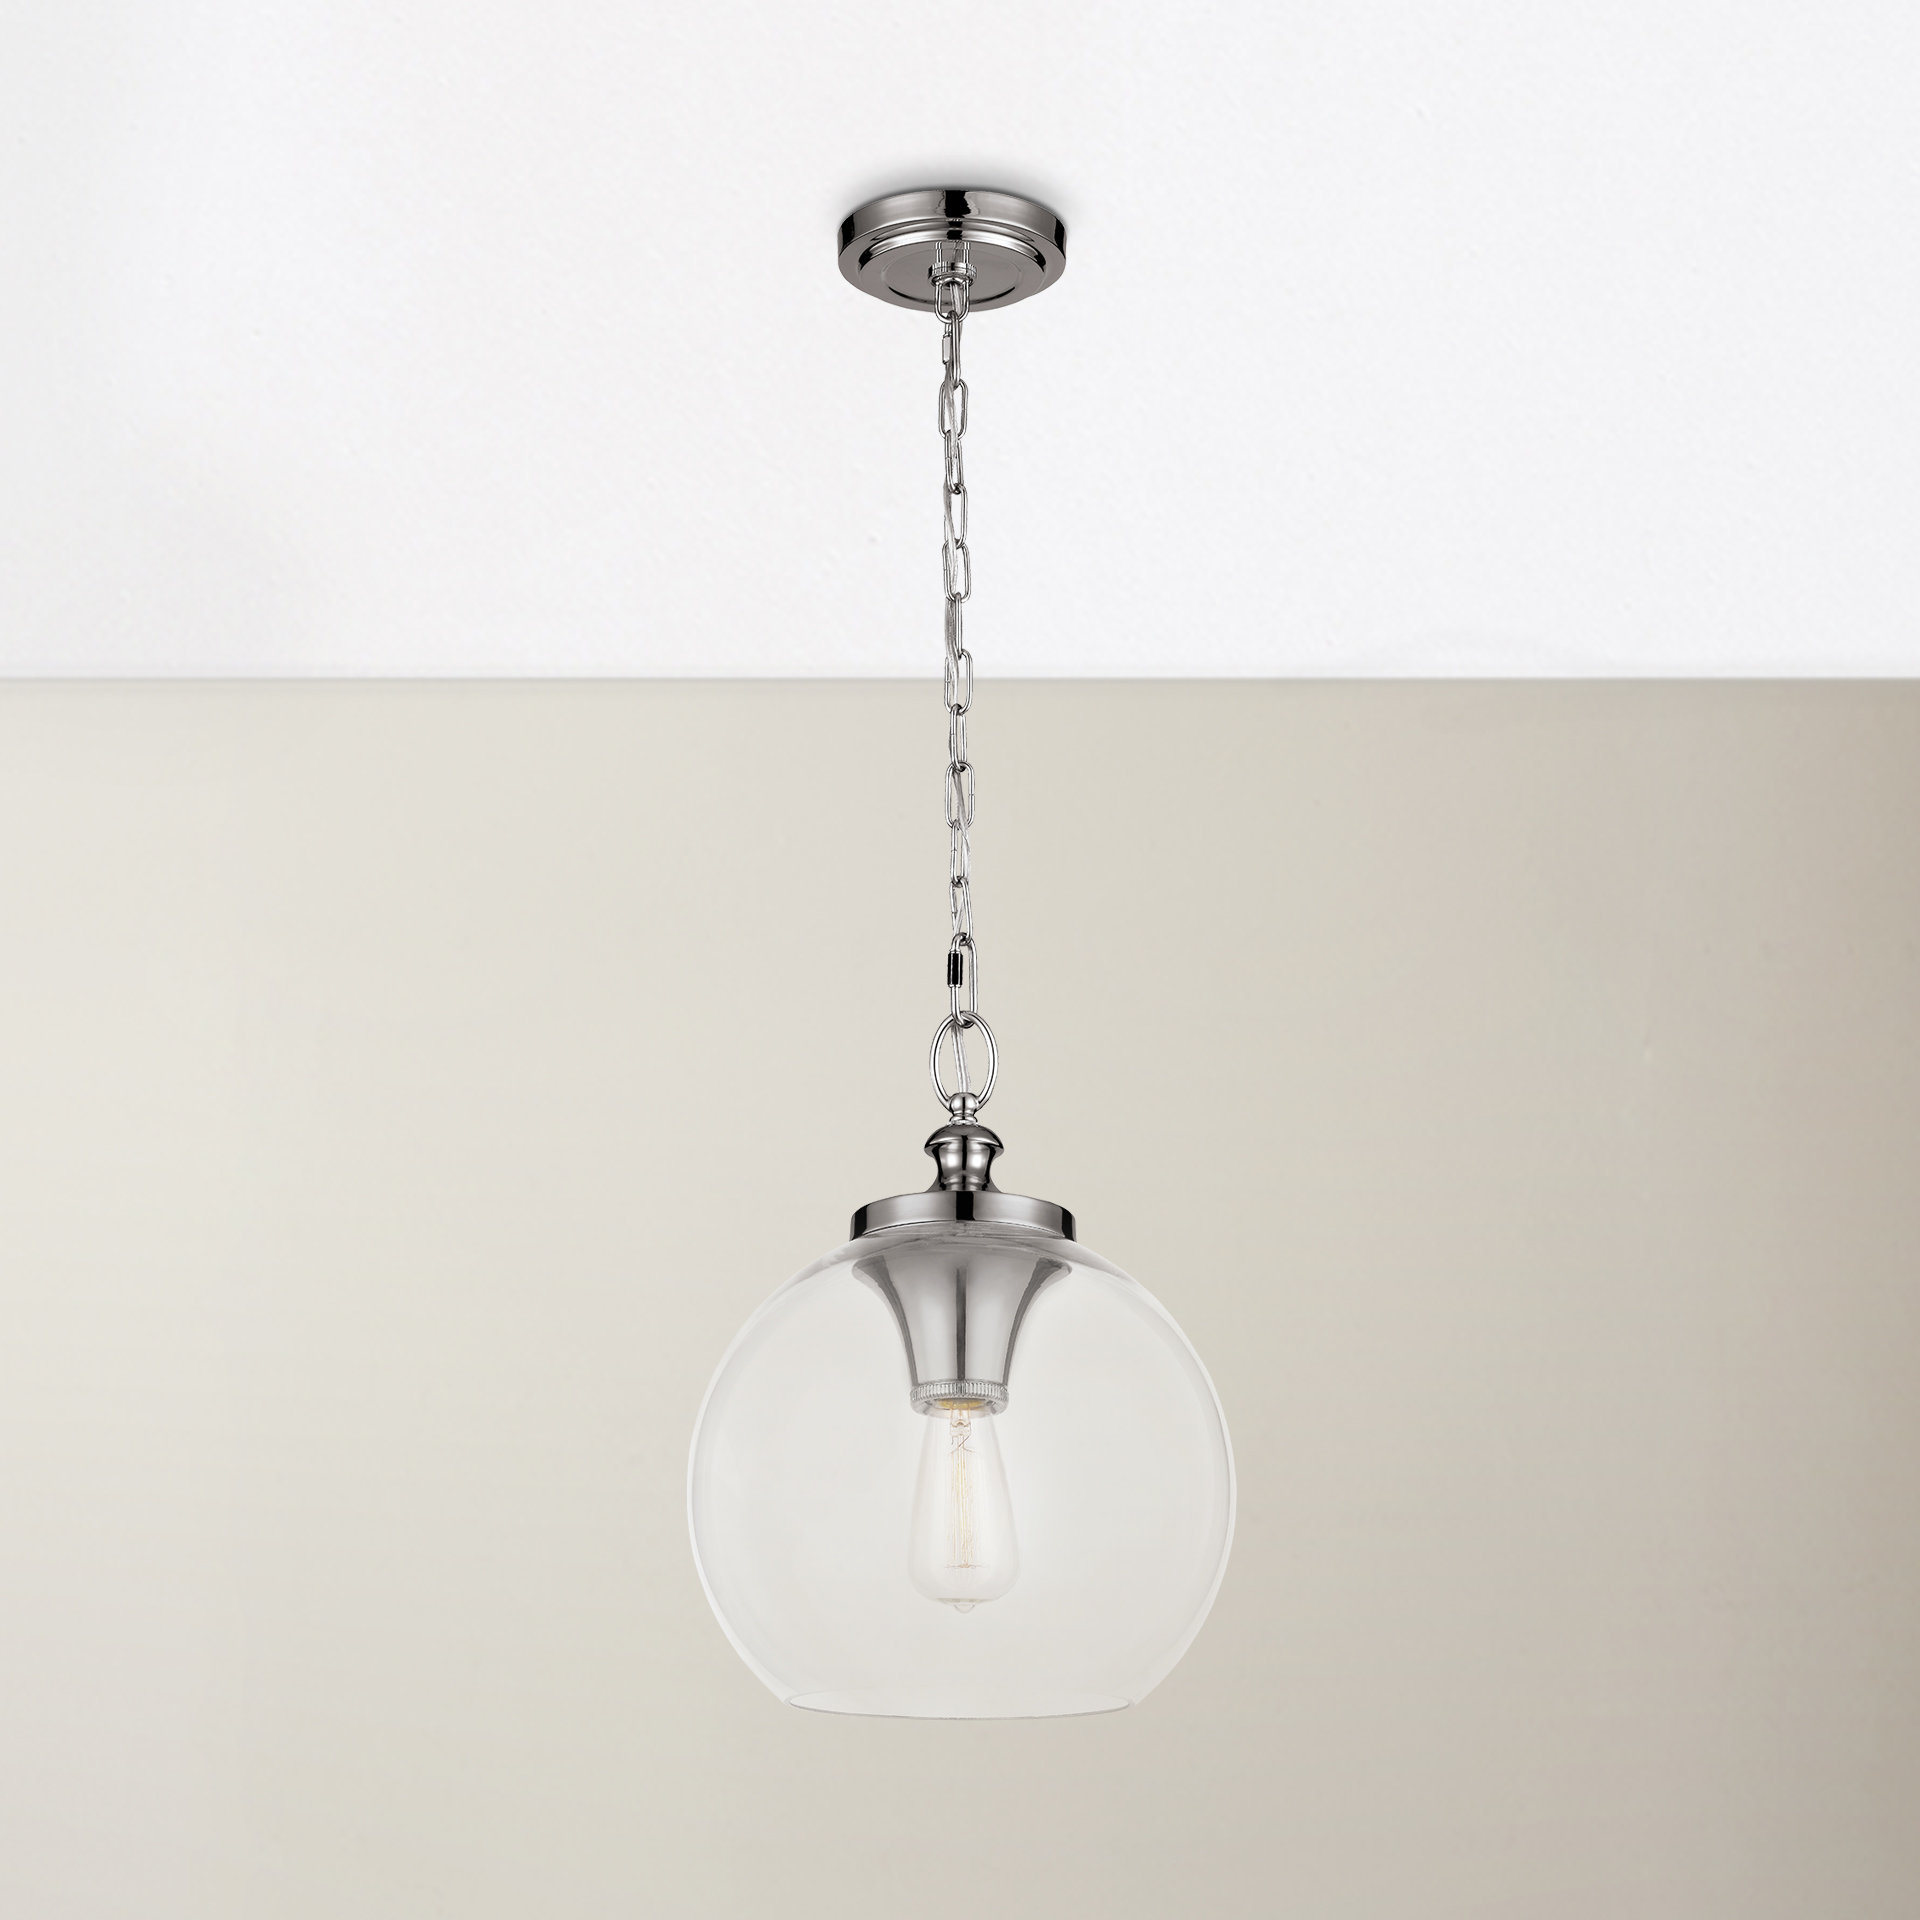 Asellus 1 Light Single Globe Pendant For Most Recently Released Nolan 1 Light Single Cylinder Pendants (View 2 of 25)